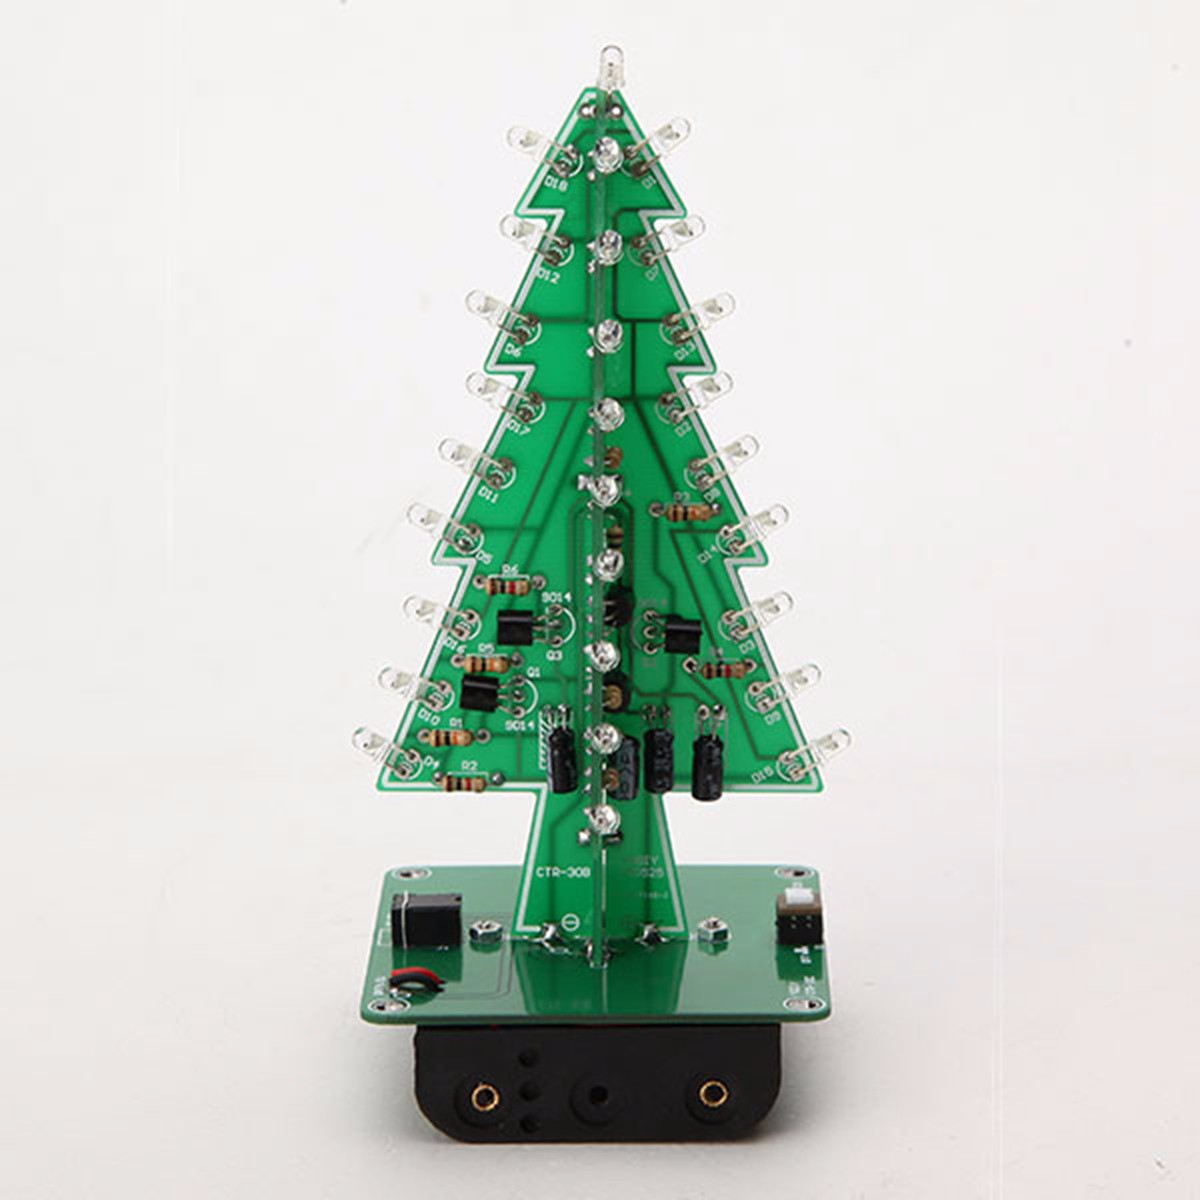 1Set Tree LED Flash Kit 3D DIY Electronic Learning Kit three-color light / Colorful light Electronic Components EL Products